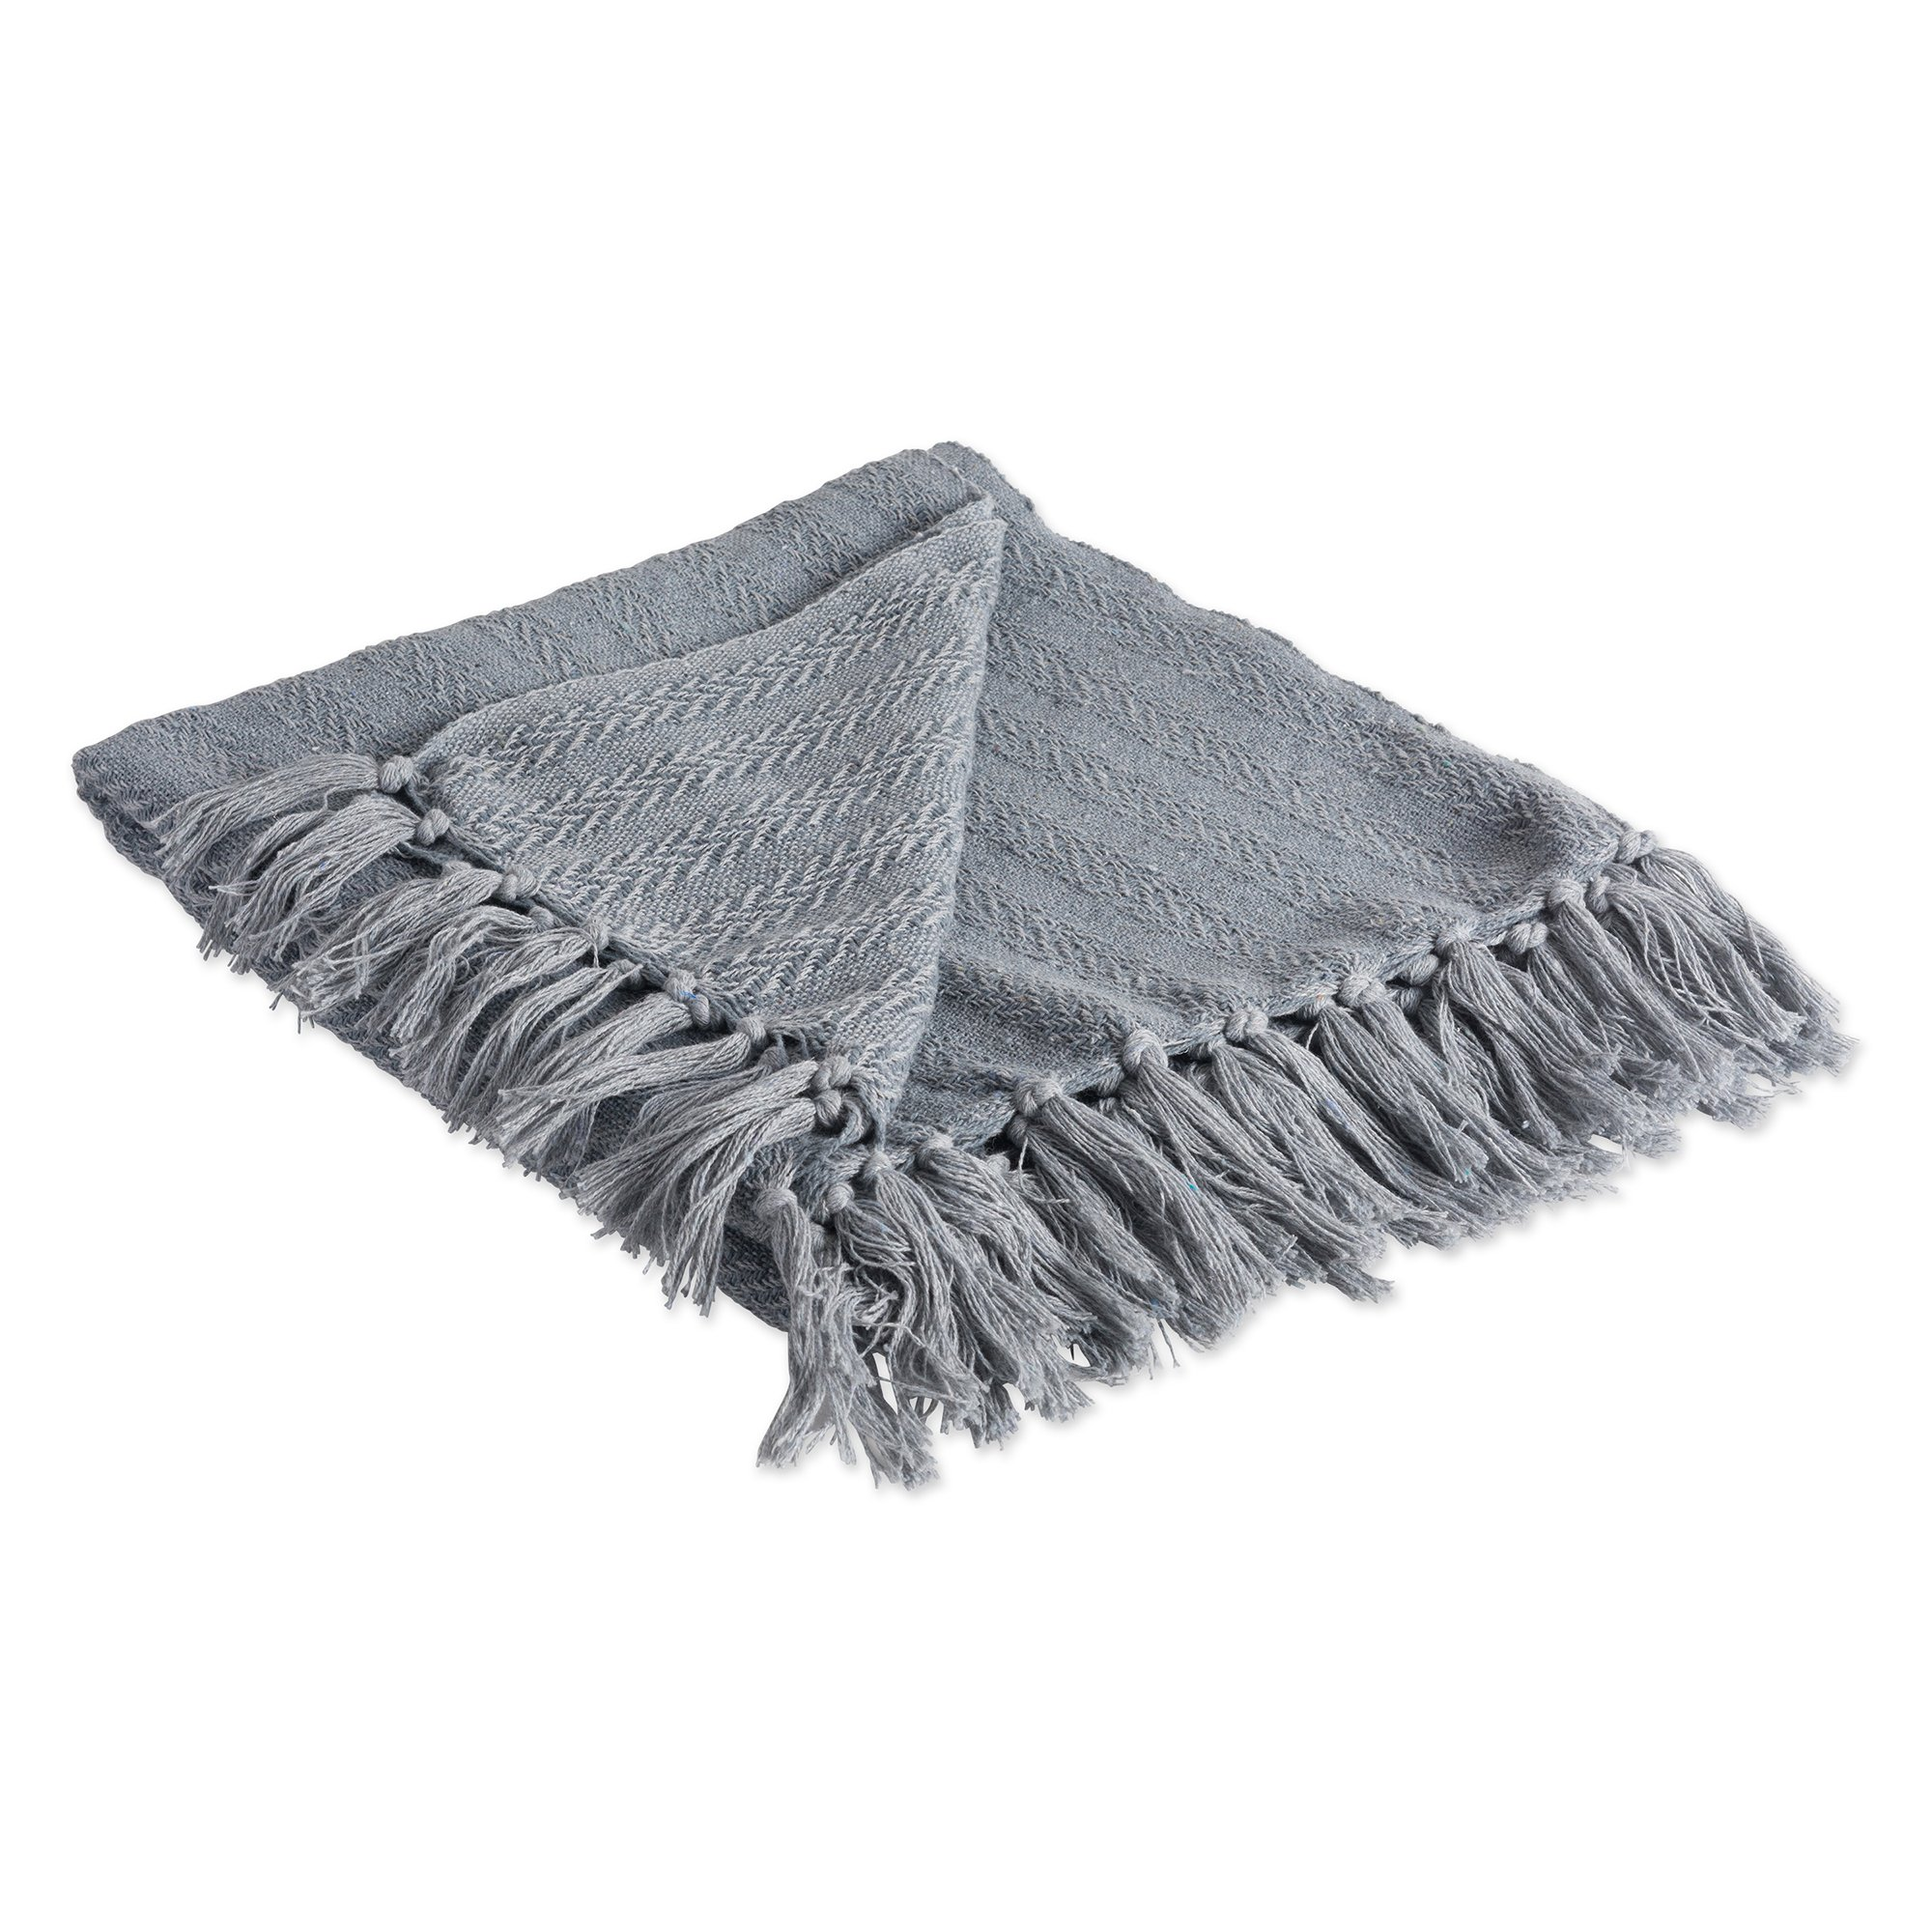 DII Rustic Farmhouse Cotton Textured Blanket Throw with Fringe for Chair, Couch, Picnic, Camping, Beach, Everyday Use, 50 x 60 - Solid Textured Cool Gray